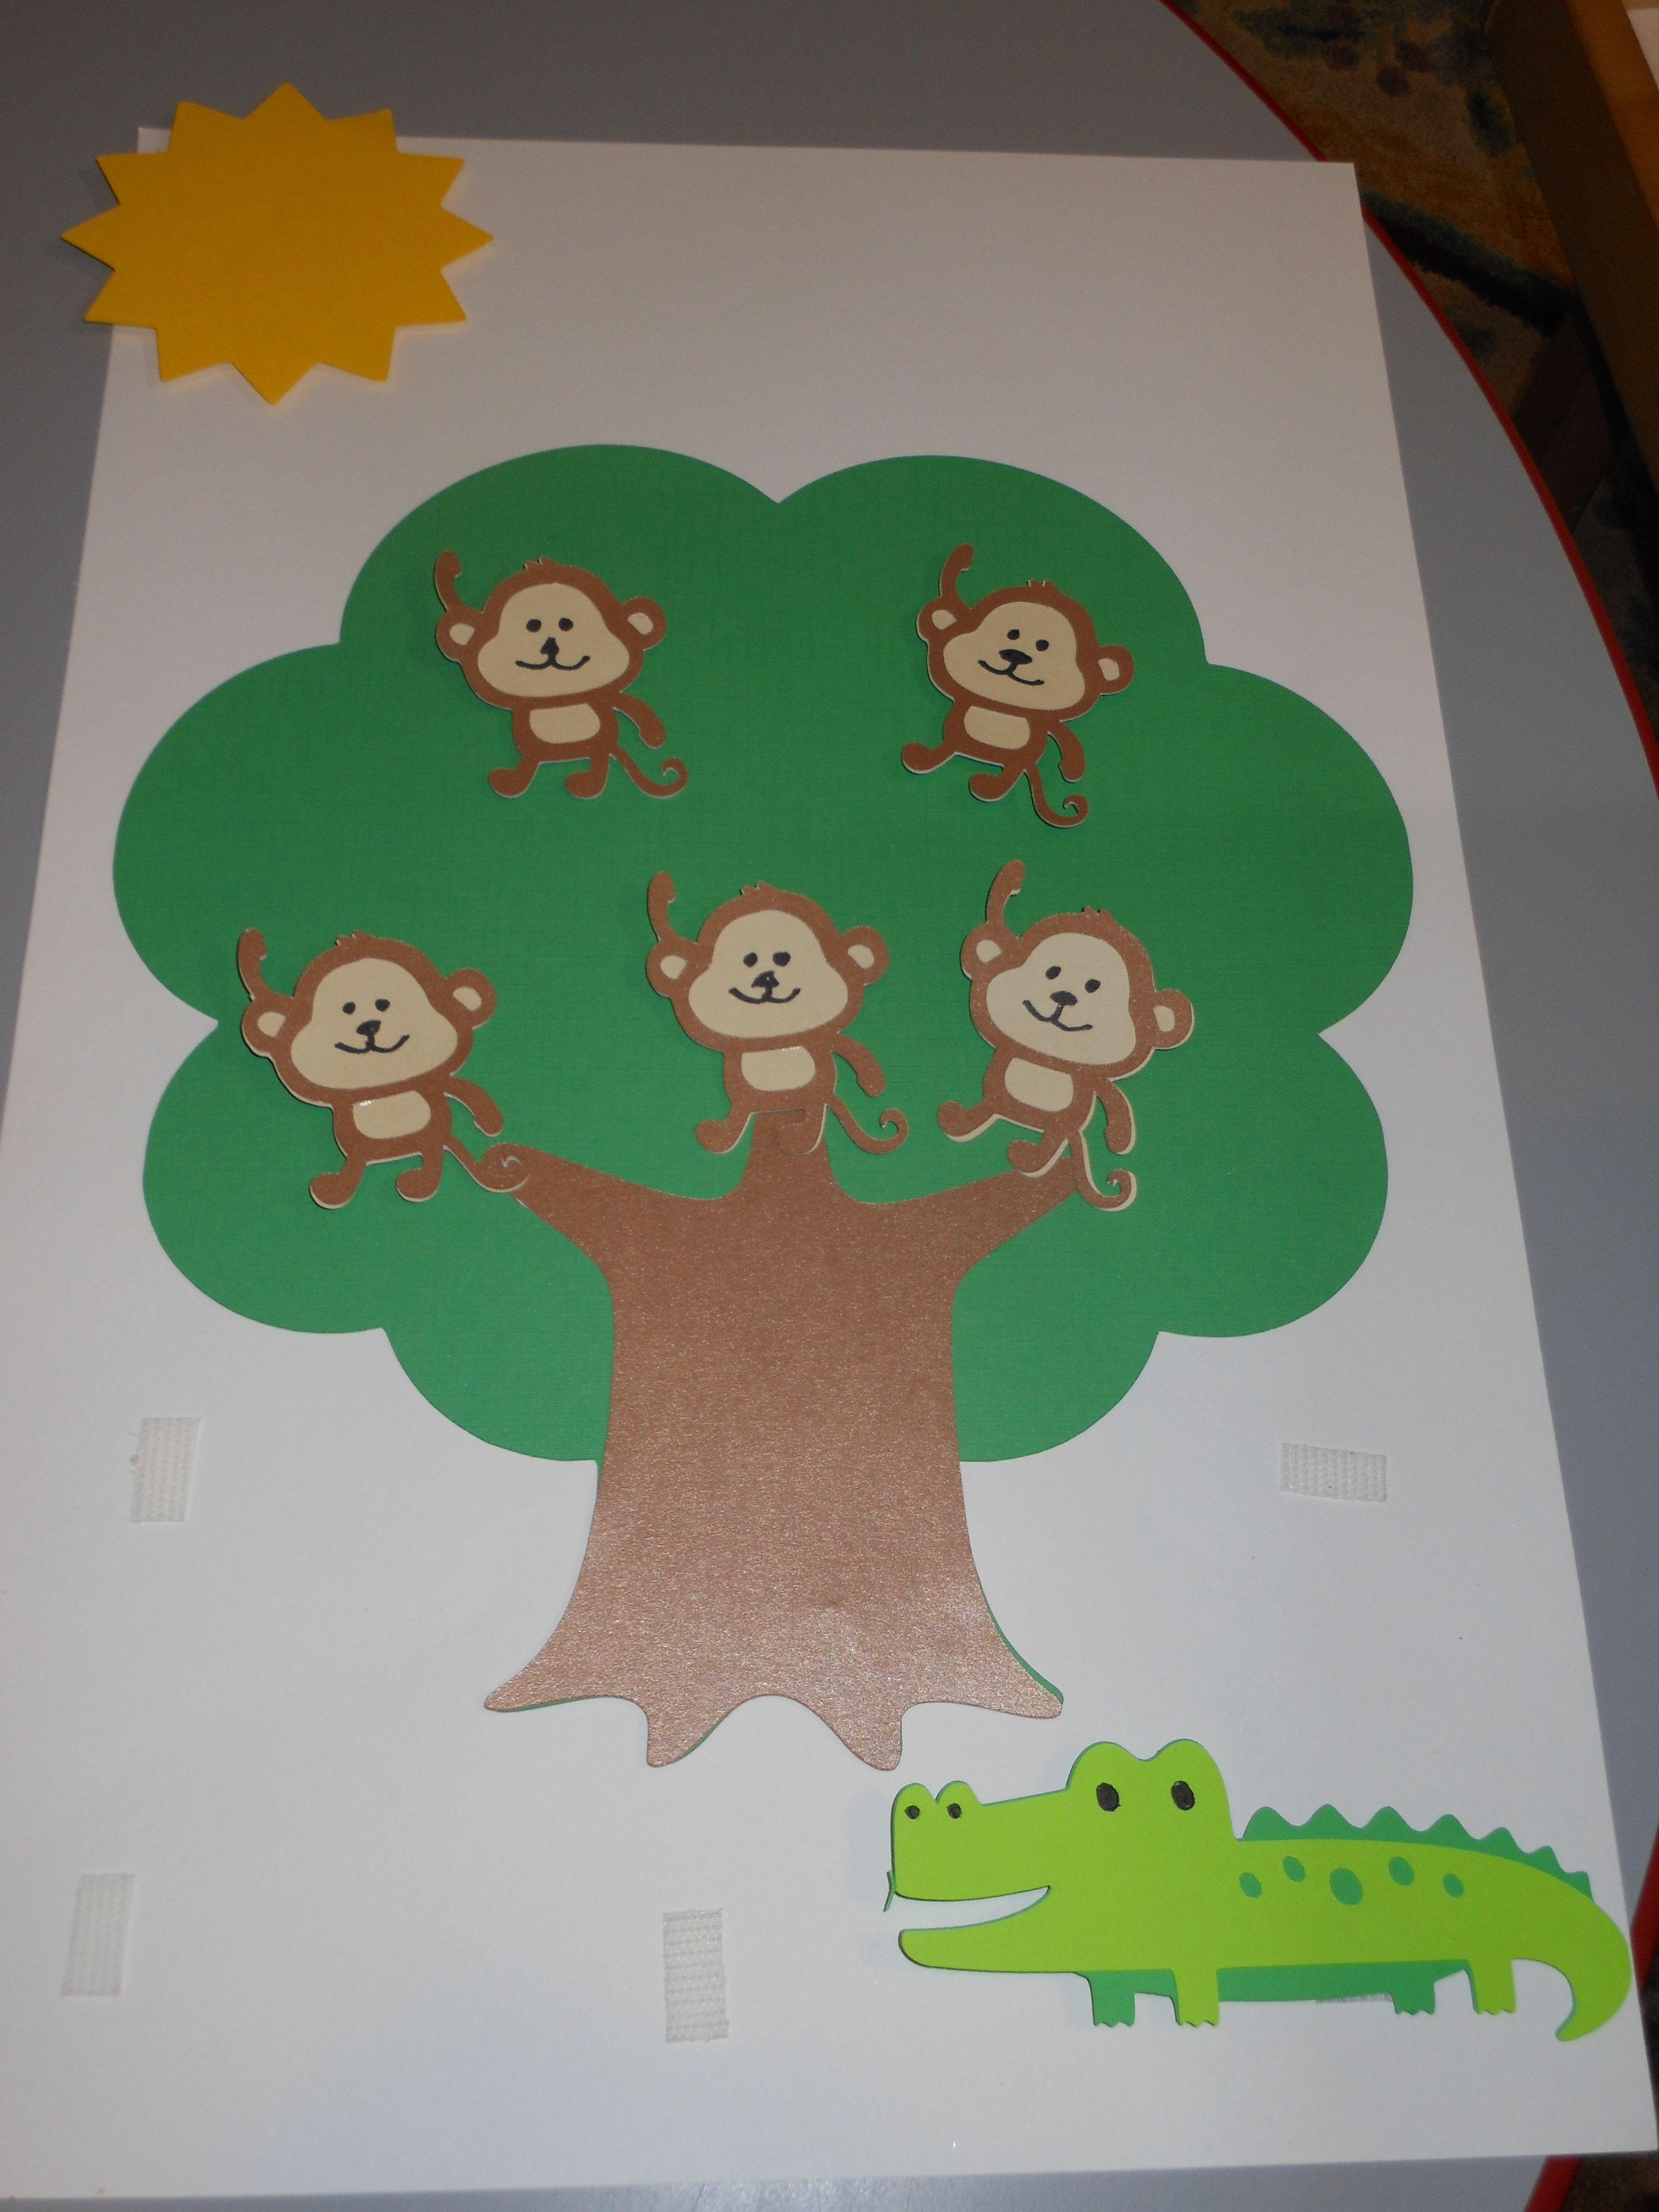 5 Little Monkeys Sitting In The Tree